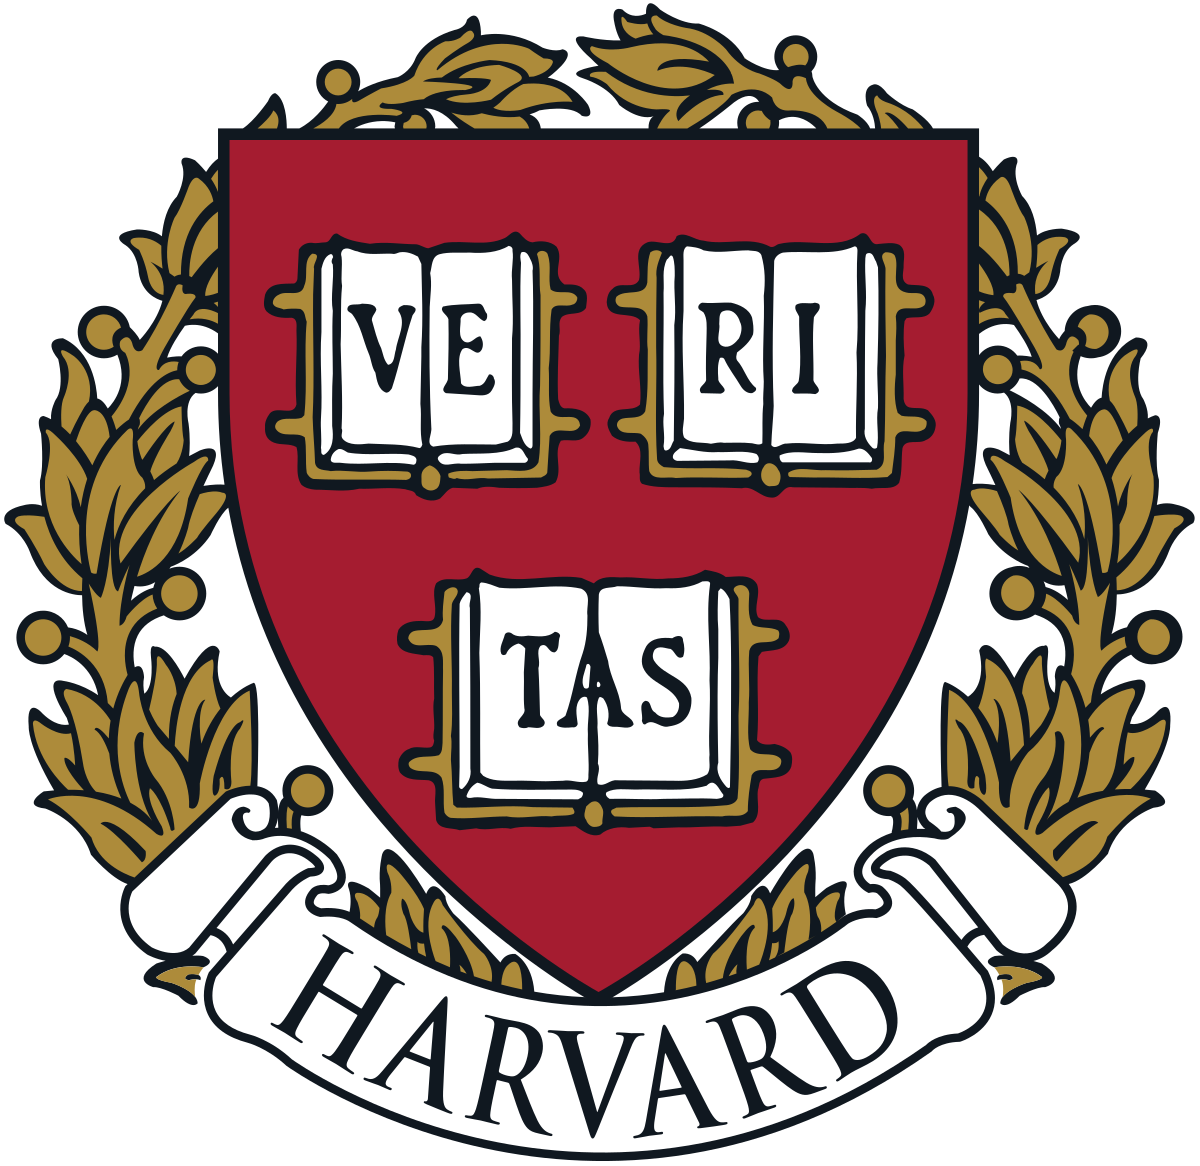 Harvard university online course on statistics and R